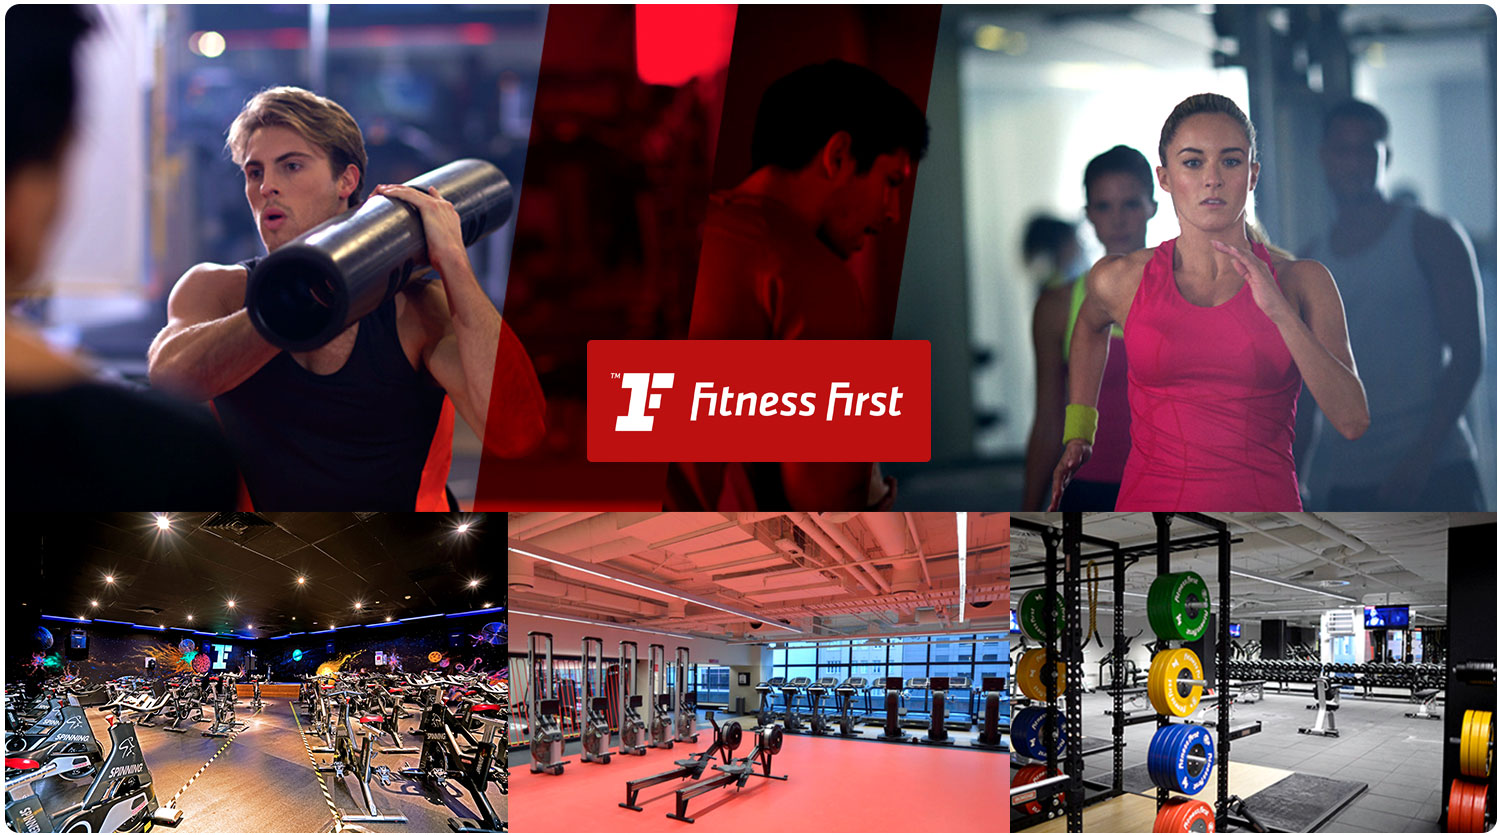 Start your Fitness Journey with Fitness First with only $14.95 for 14 days at Fitness First Sydney NSW. Experience our first class gym and freestyle classes inc. Zumba, Pilates, HIIT, Les Mills and more. Take the first step with Fitness First Sydney NSW.